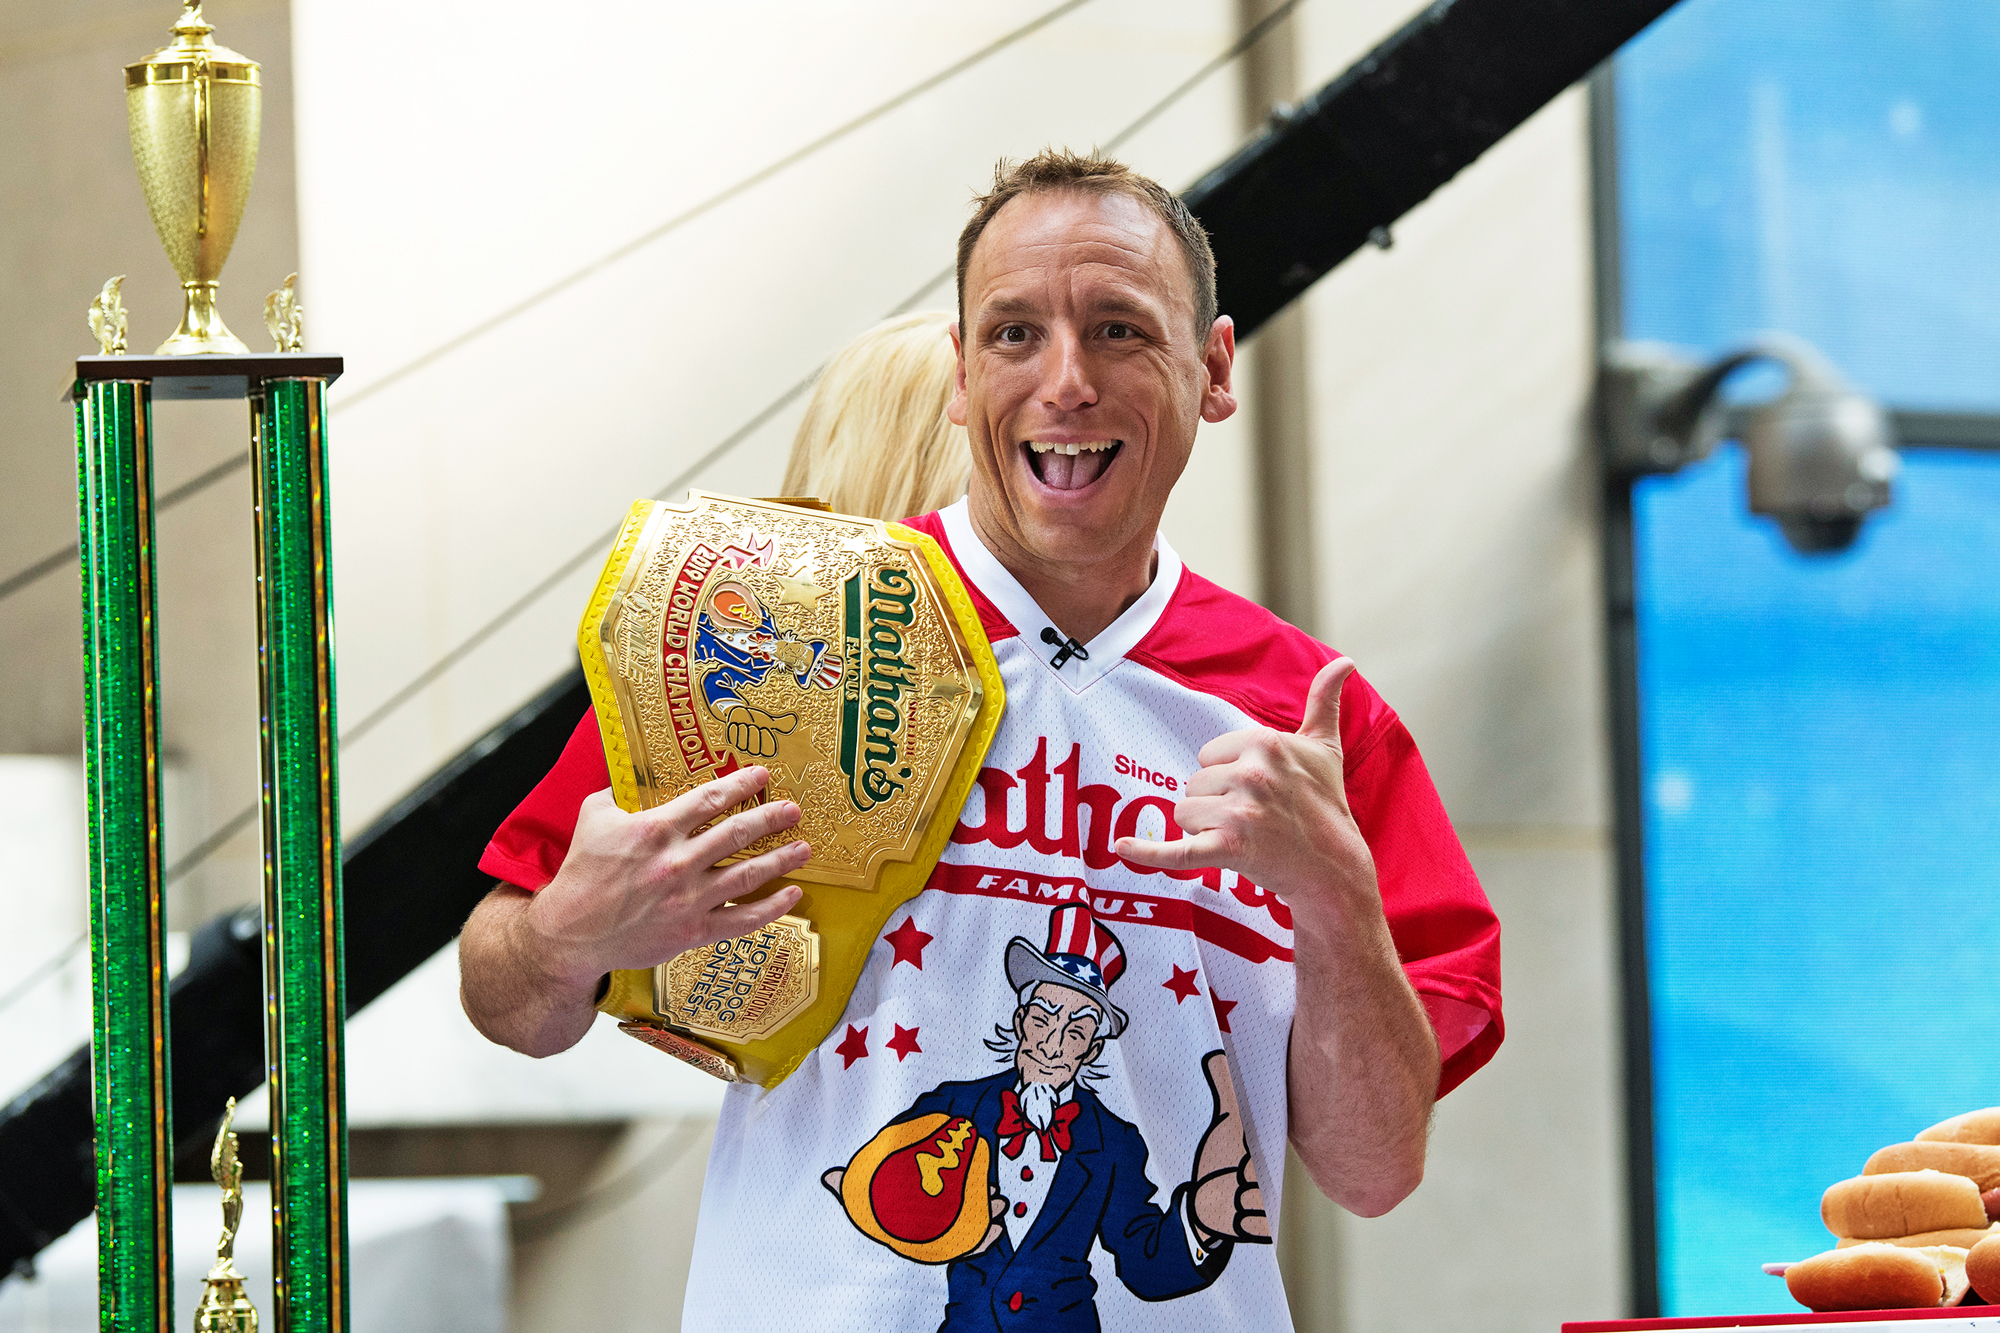 Joey Chestnut Training in Isolation